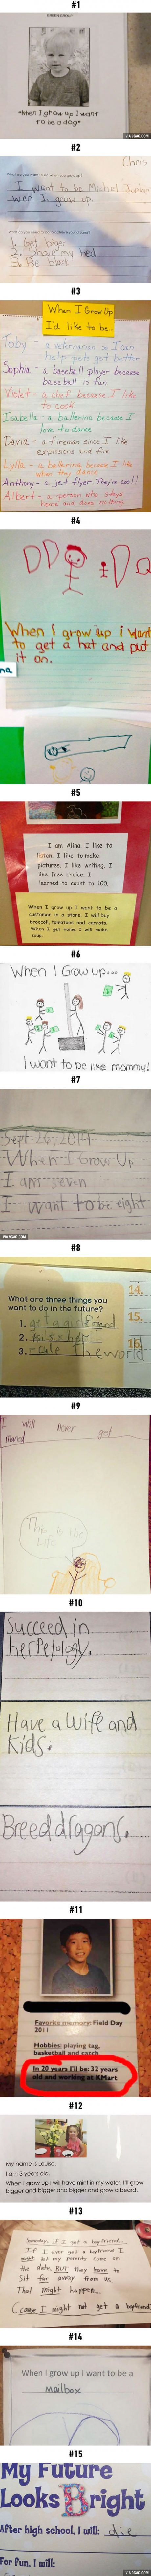 15 Hilarious Kids Who Have Their Life Goals Totally Figured Out... Kind Of